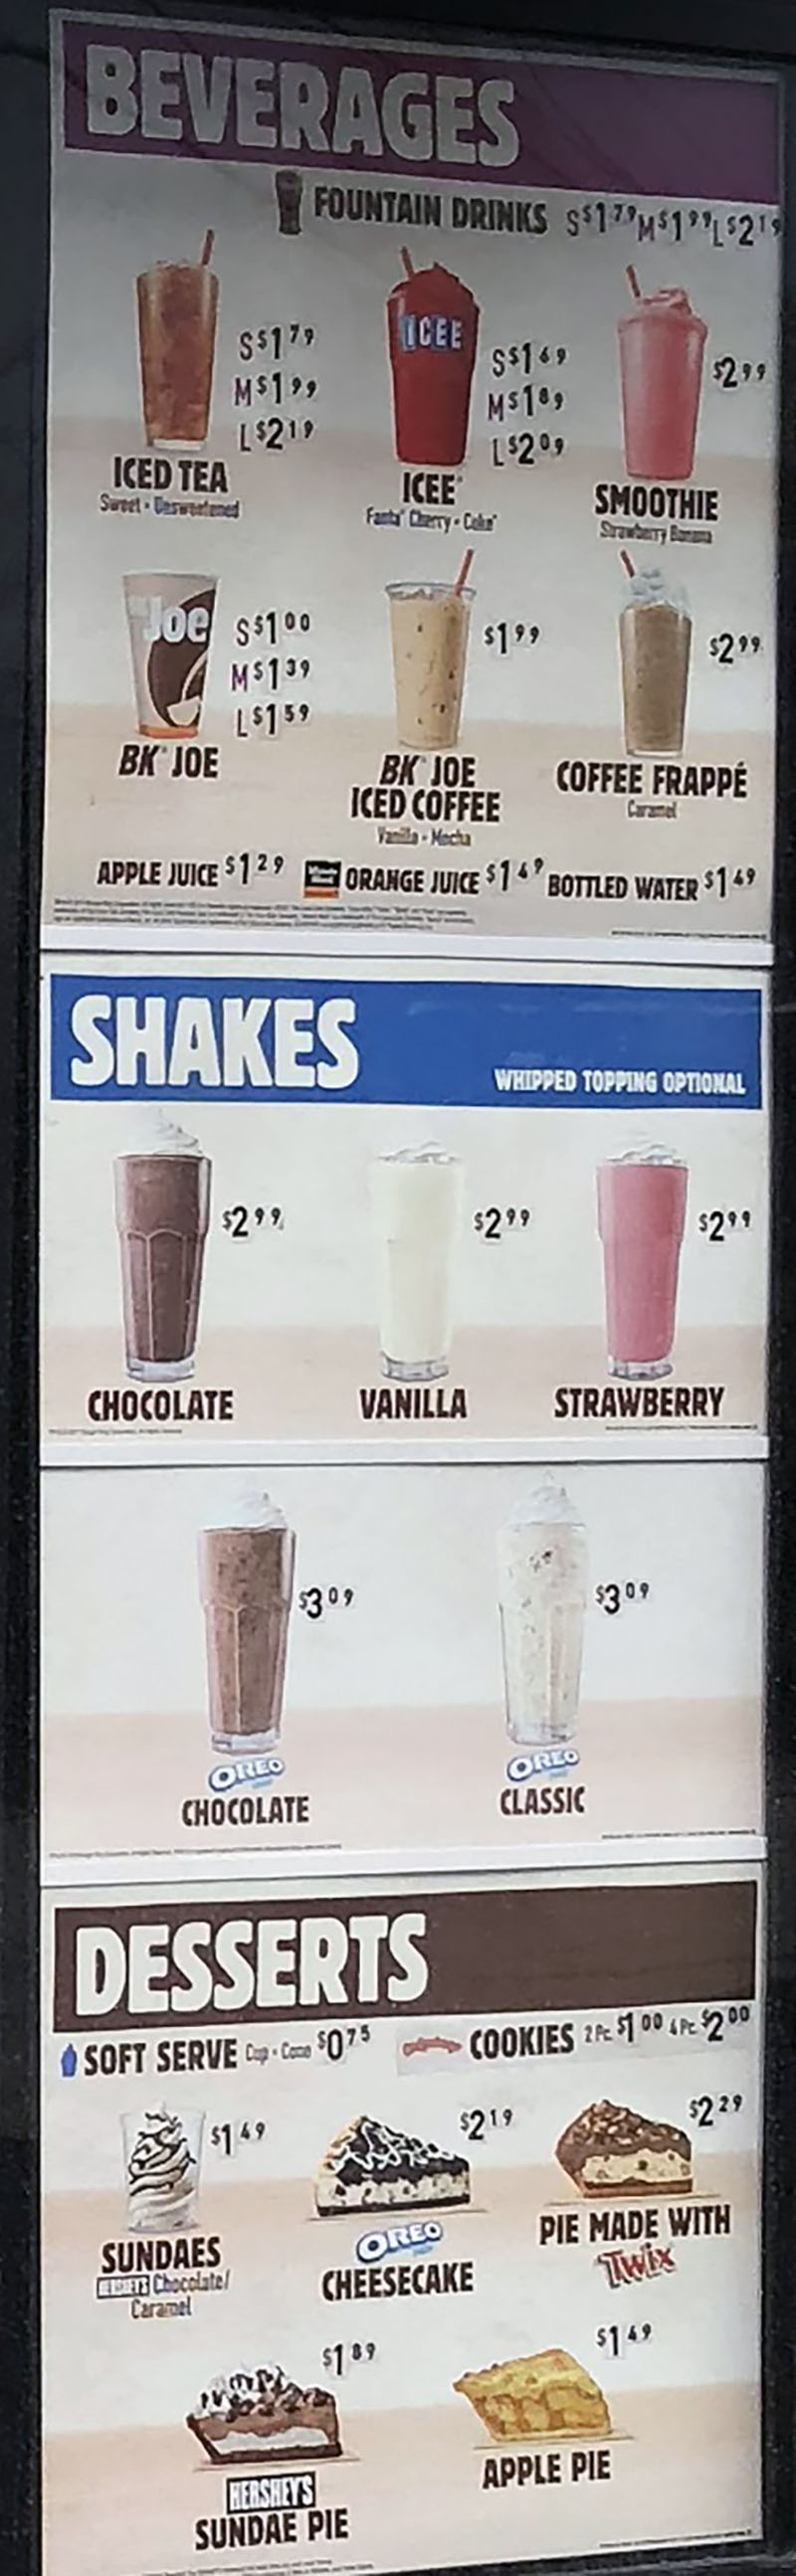 Burger King menu 2018 - beverages, shakes, desserts